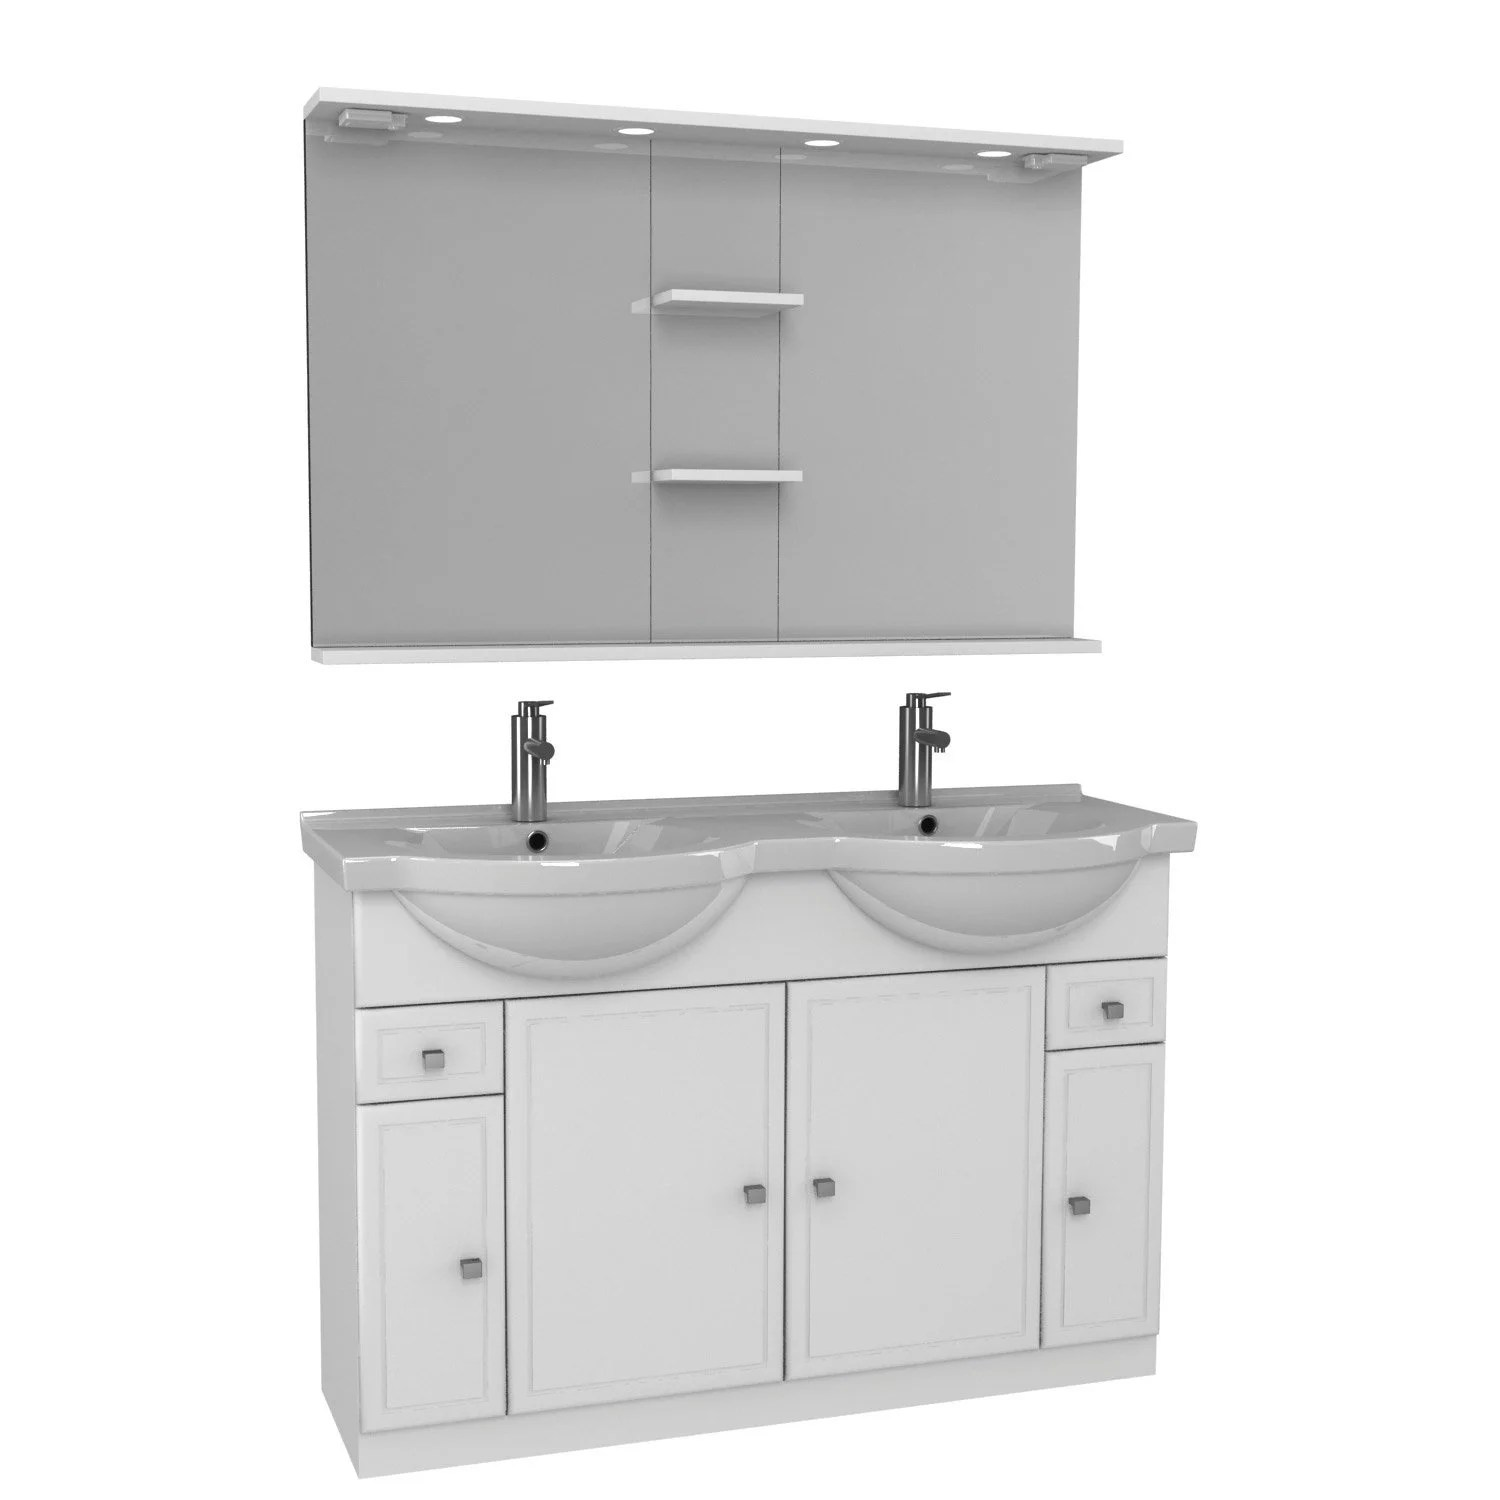 Meuble Double Vasque 120 Leroy Merlin Meuble Vasque L 120 X H 80 X P 35 Cm Blanc Galice Leroy